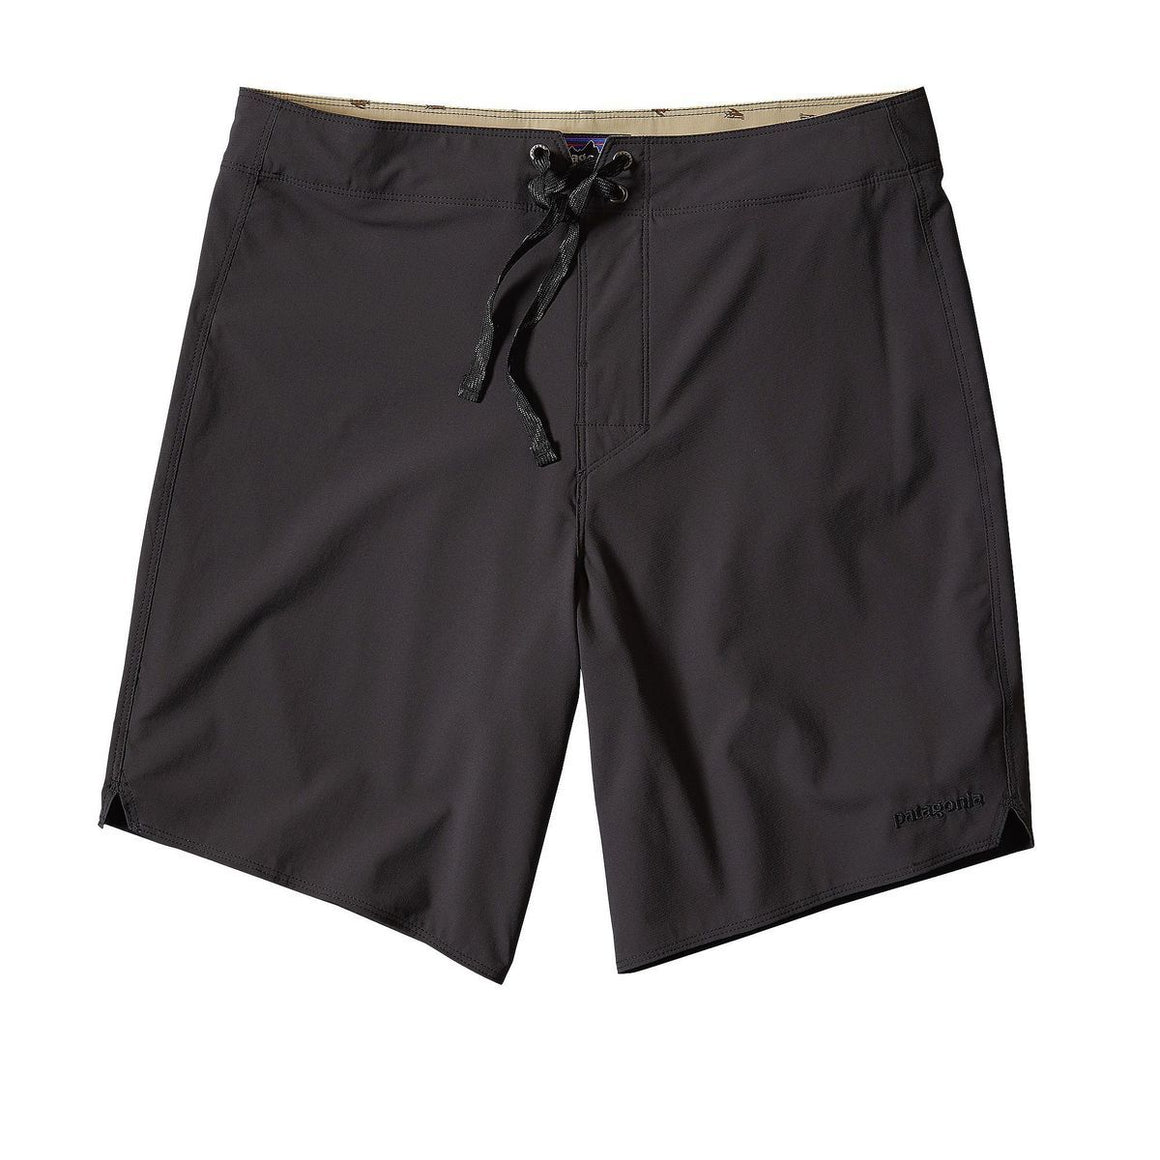 "Light & Variable® Boardshorts - 18"" Ink Black"